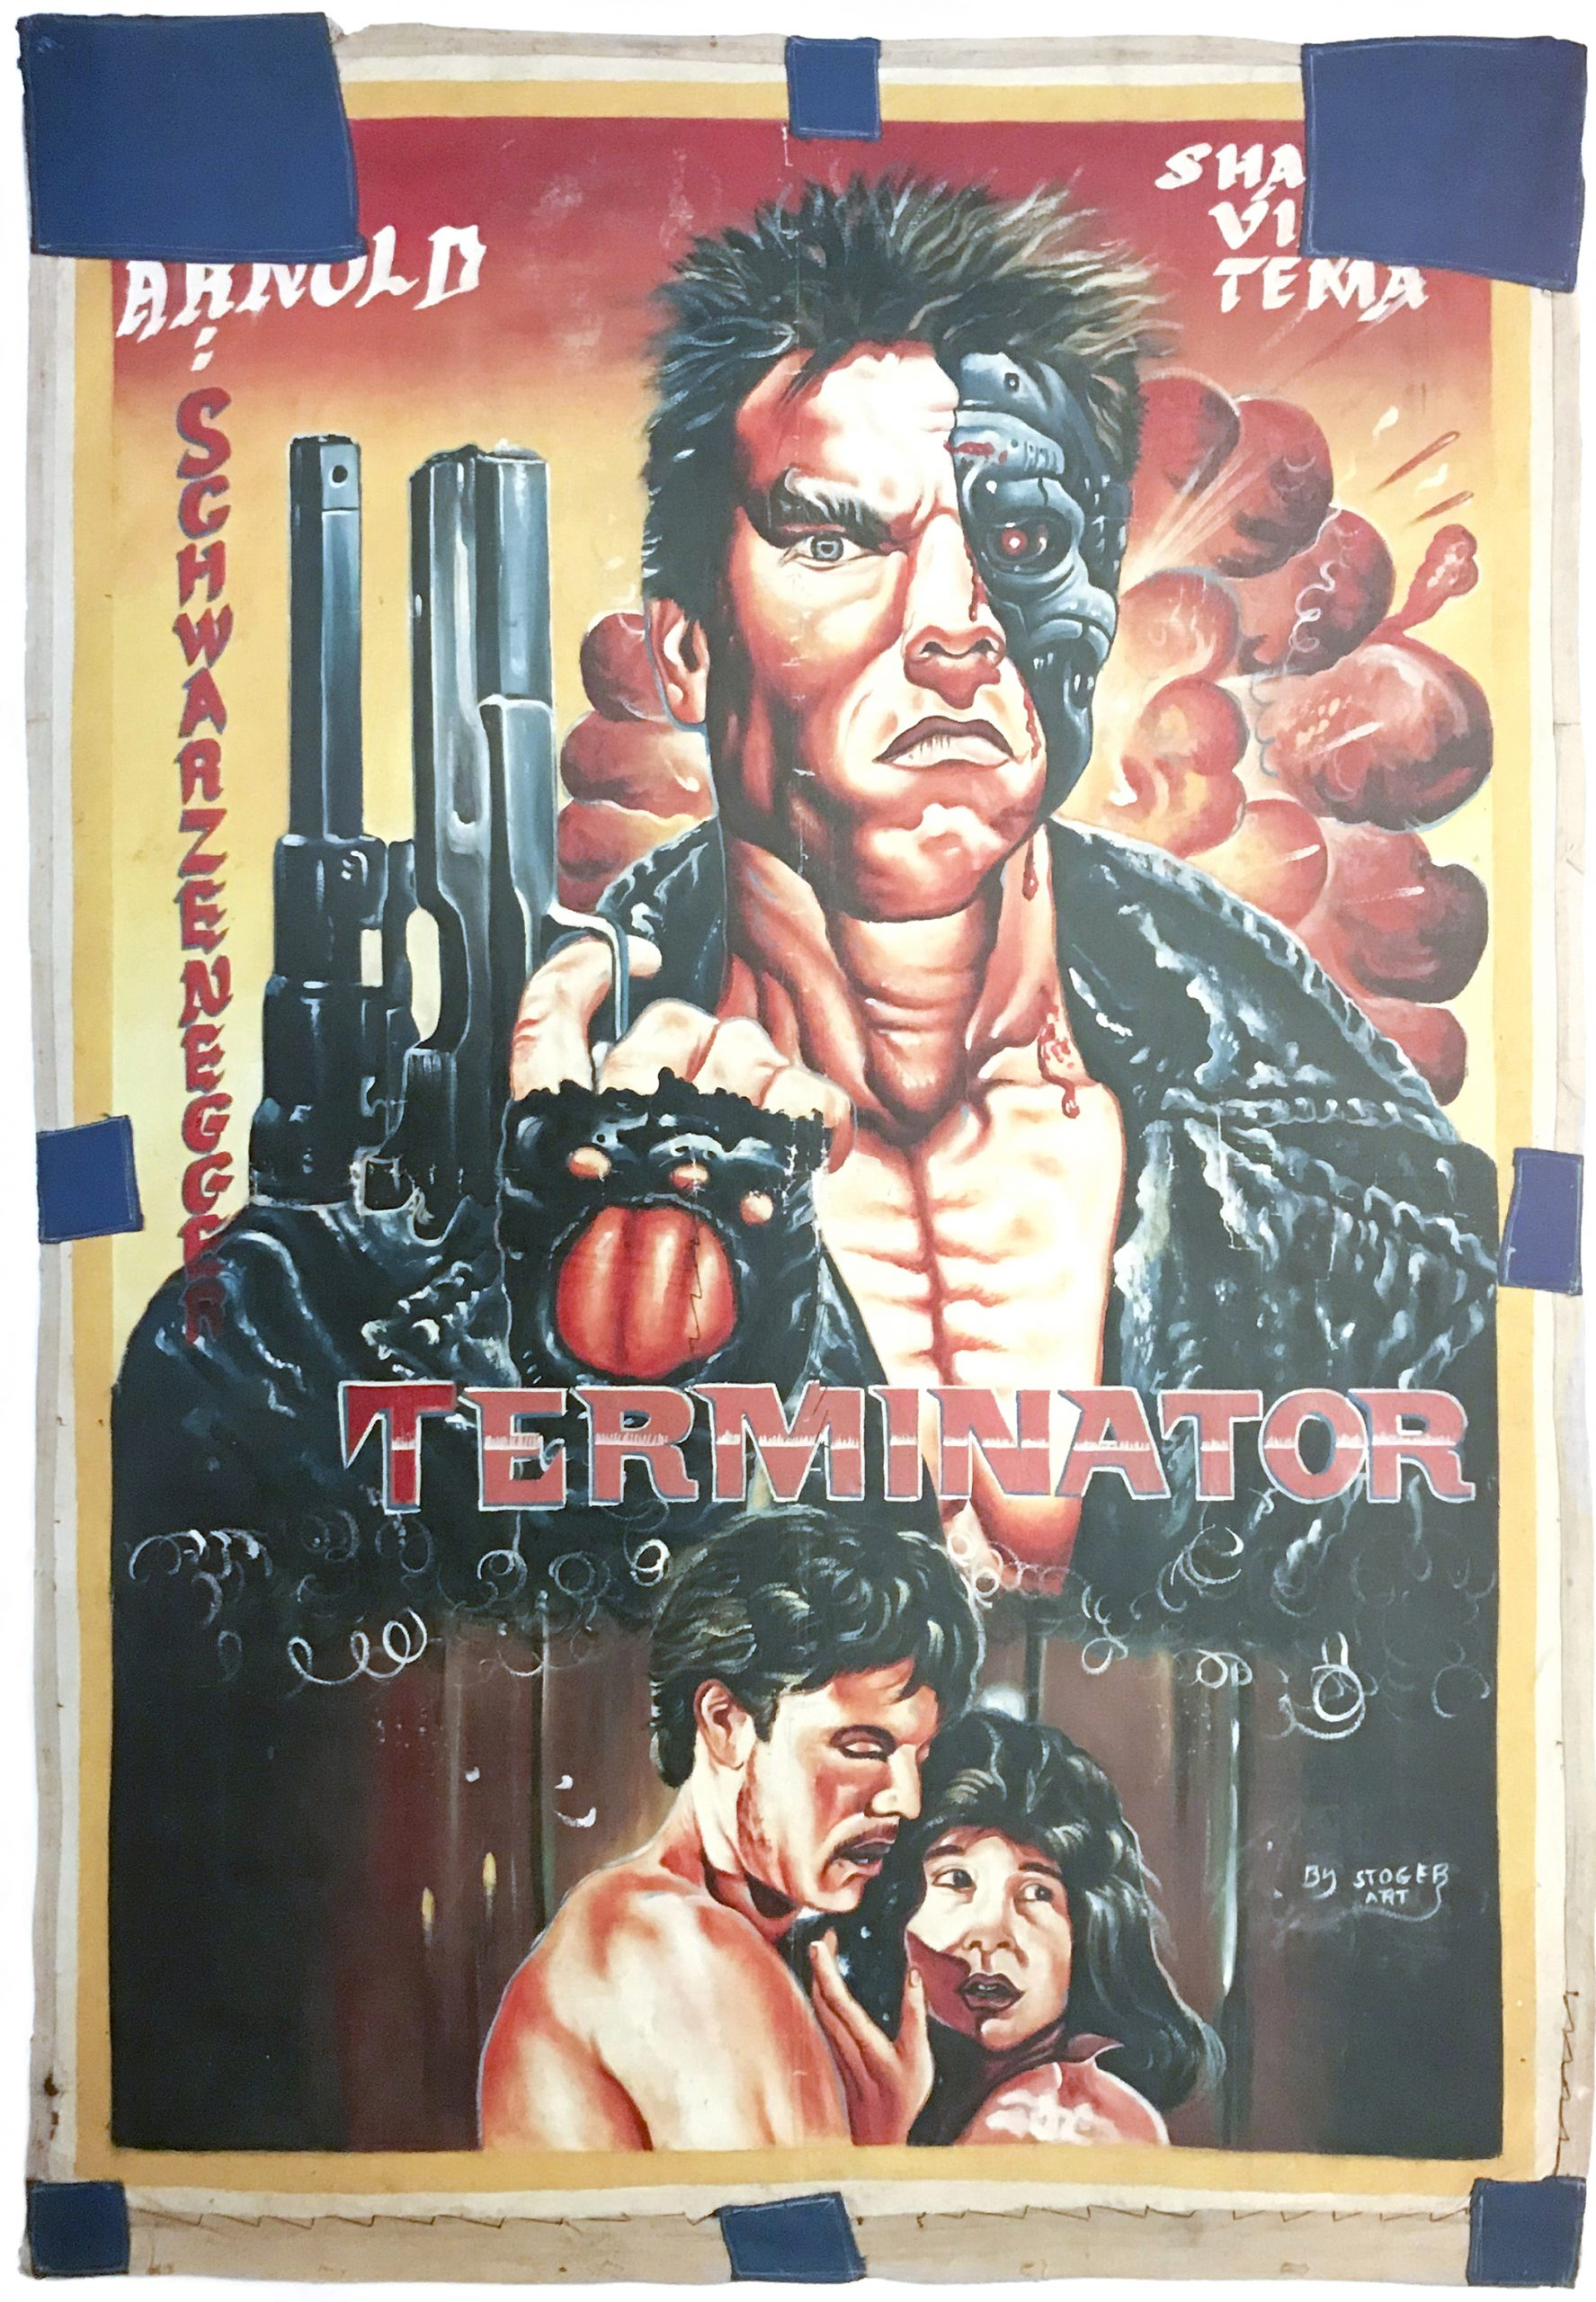 hand-painted poster of a muscular man with a half robotic face holding a gun in his right hand